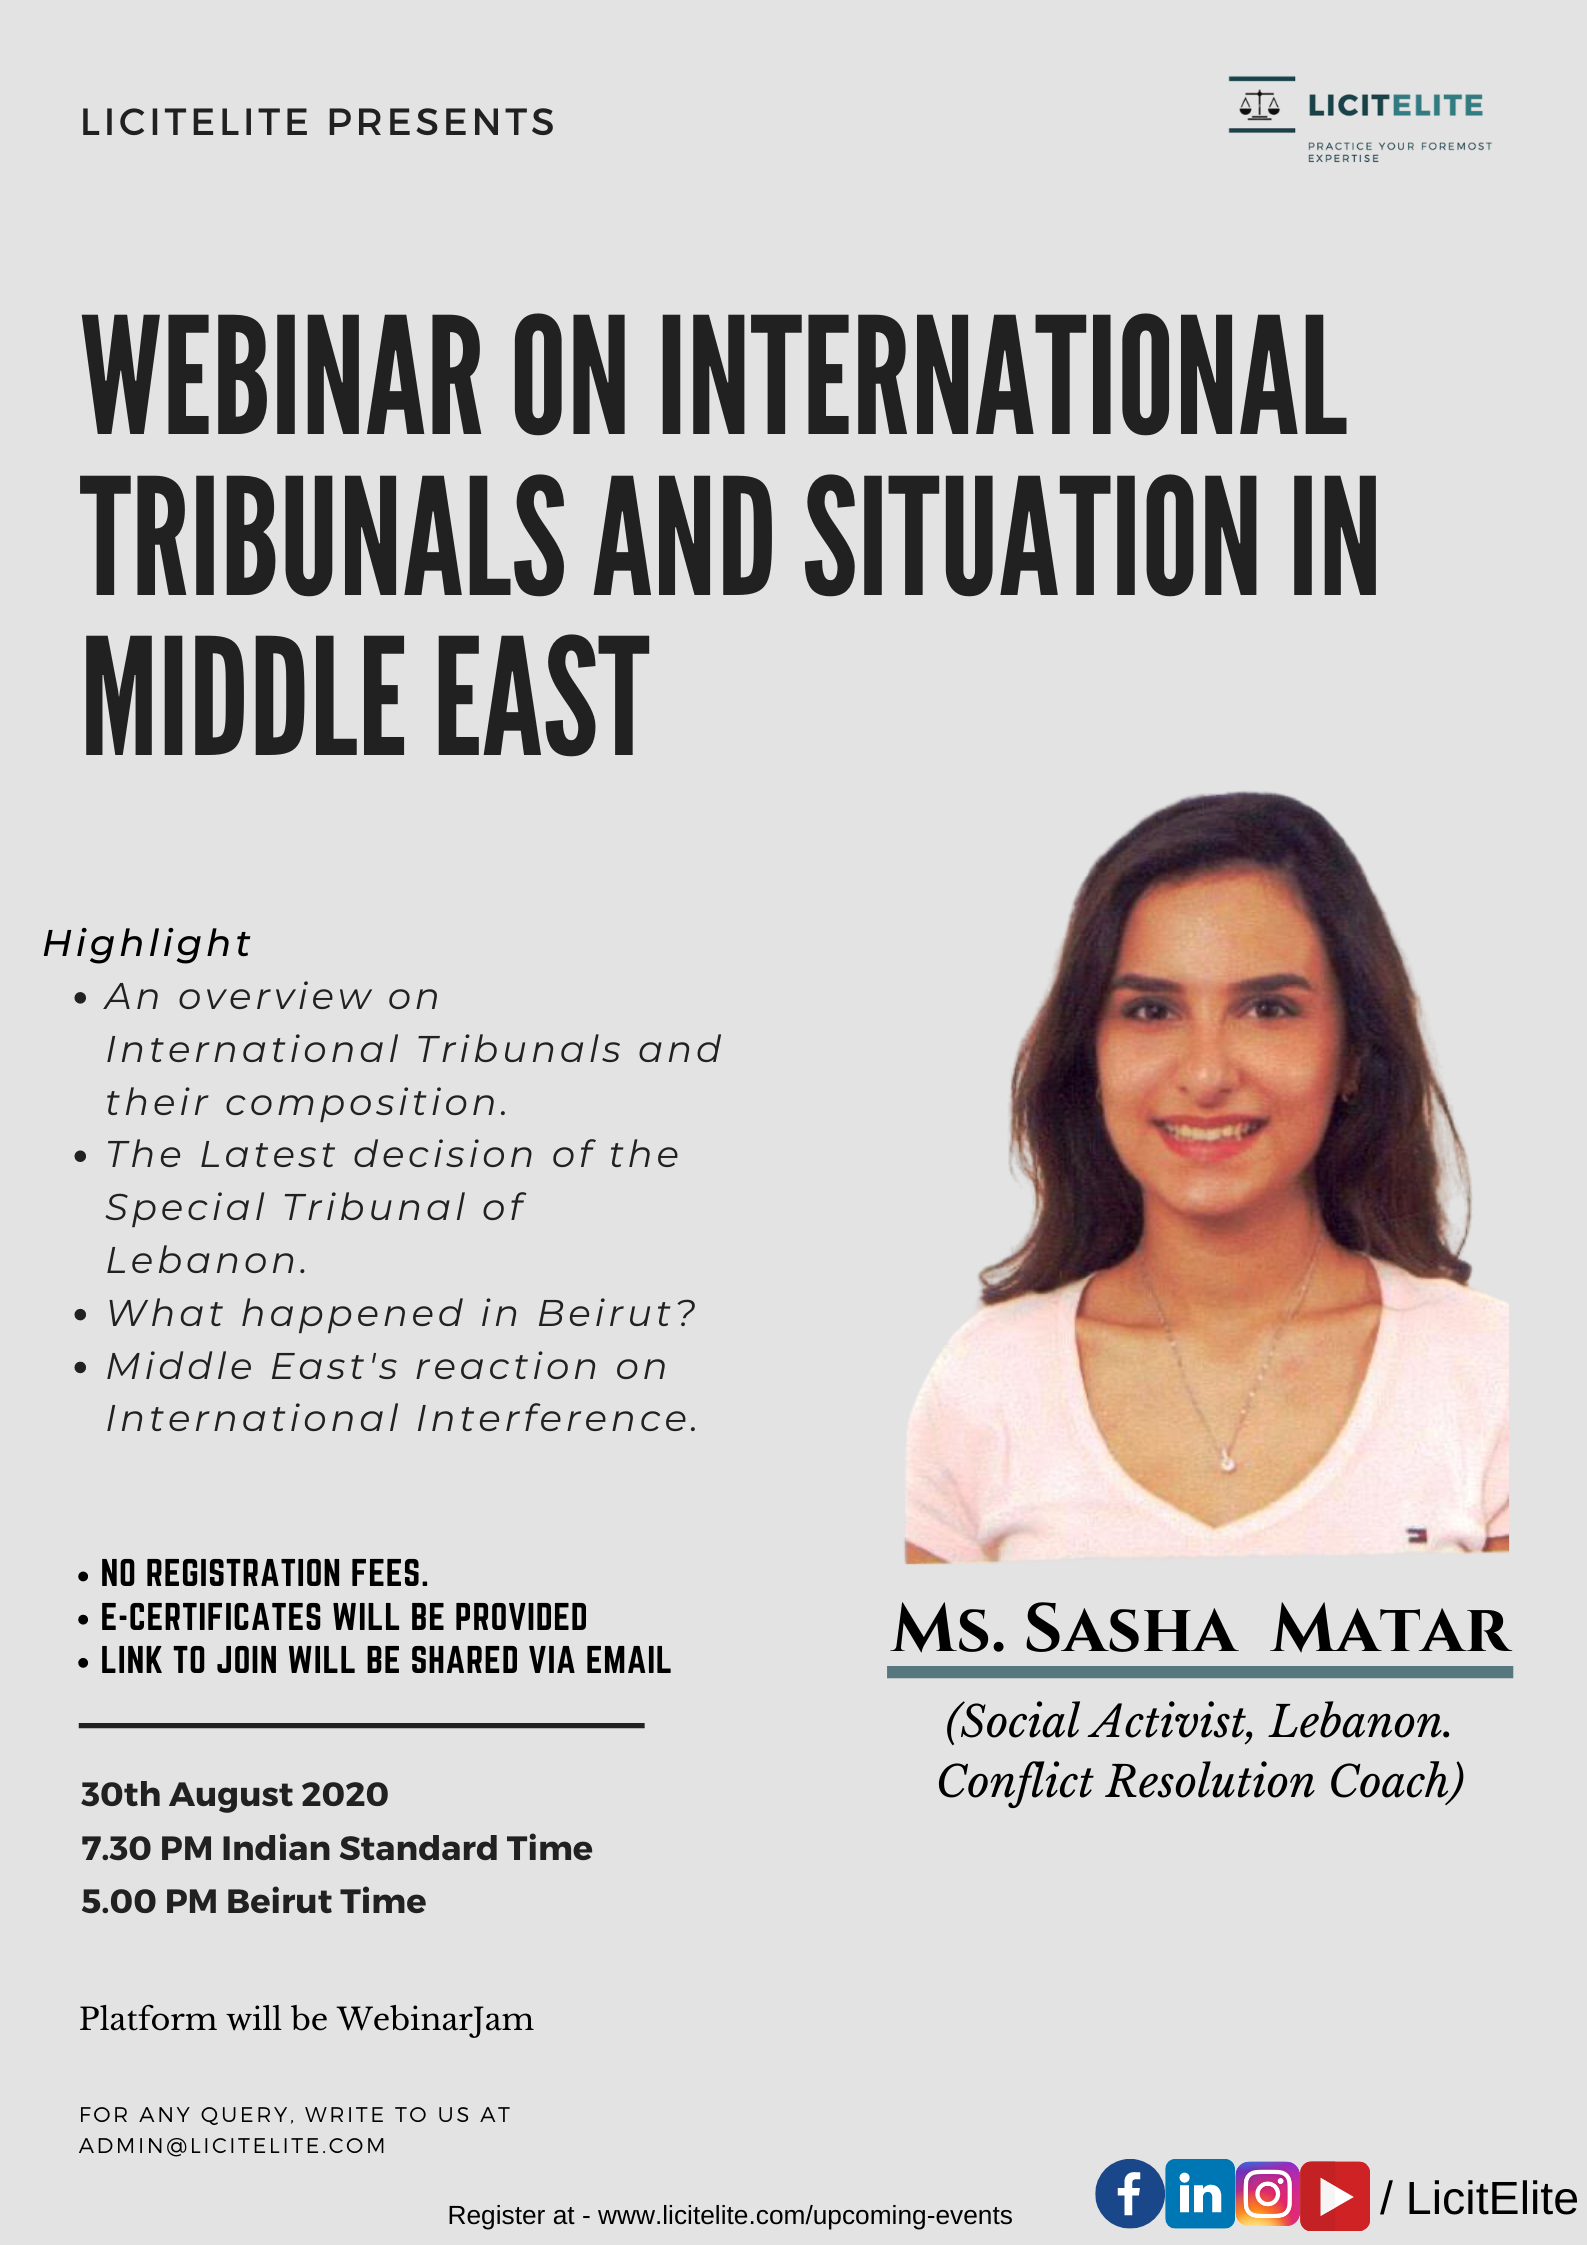 LicitElite's Webinar on International Tribunals and Situation in Middle East